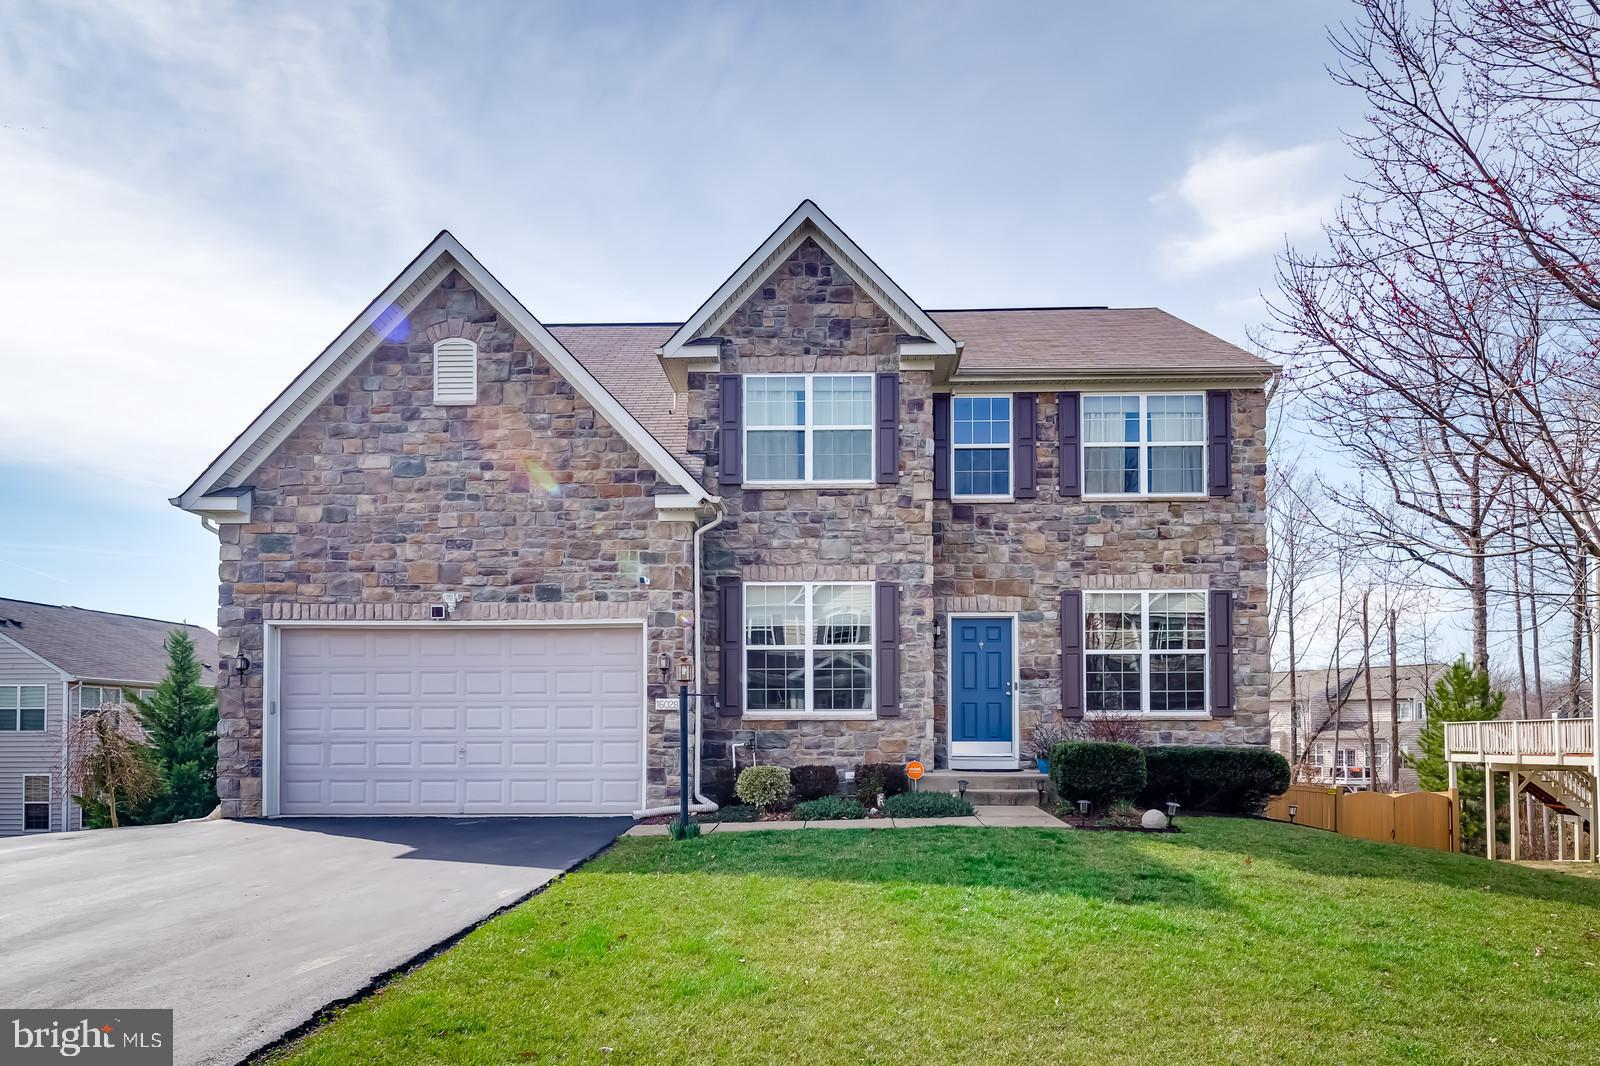 16028 IMPERIAL EAGLE COURT, WOODBRIDGE, VA 22191